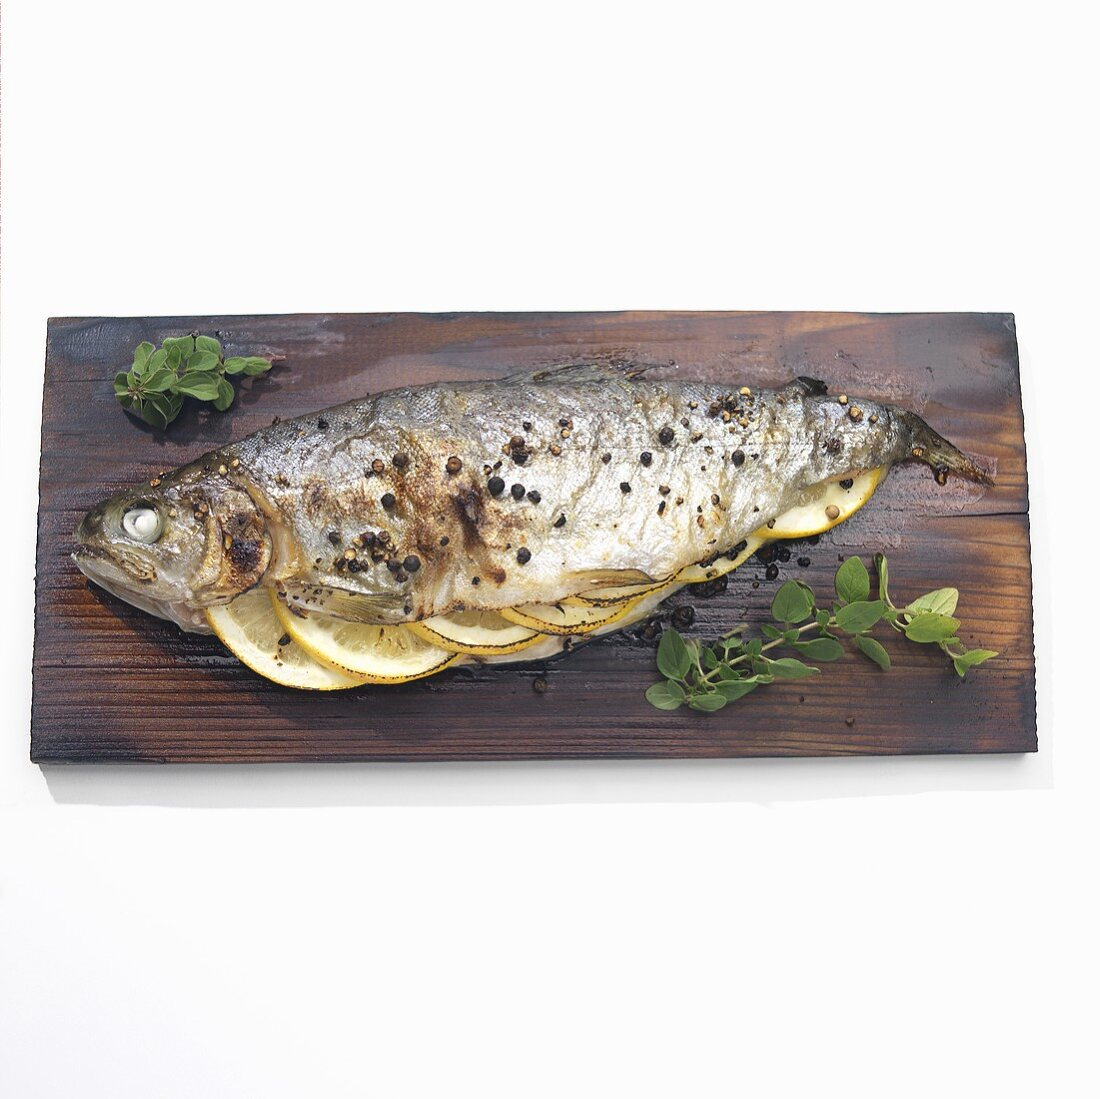 Trout Stuffed with Lemon, Pepper and Herbs; Cooked on Cedar Plank